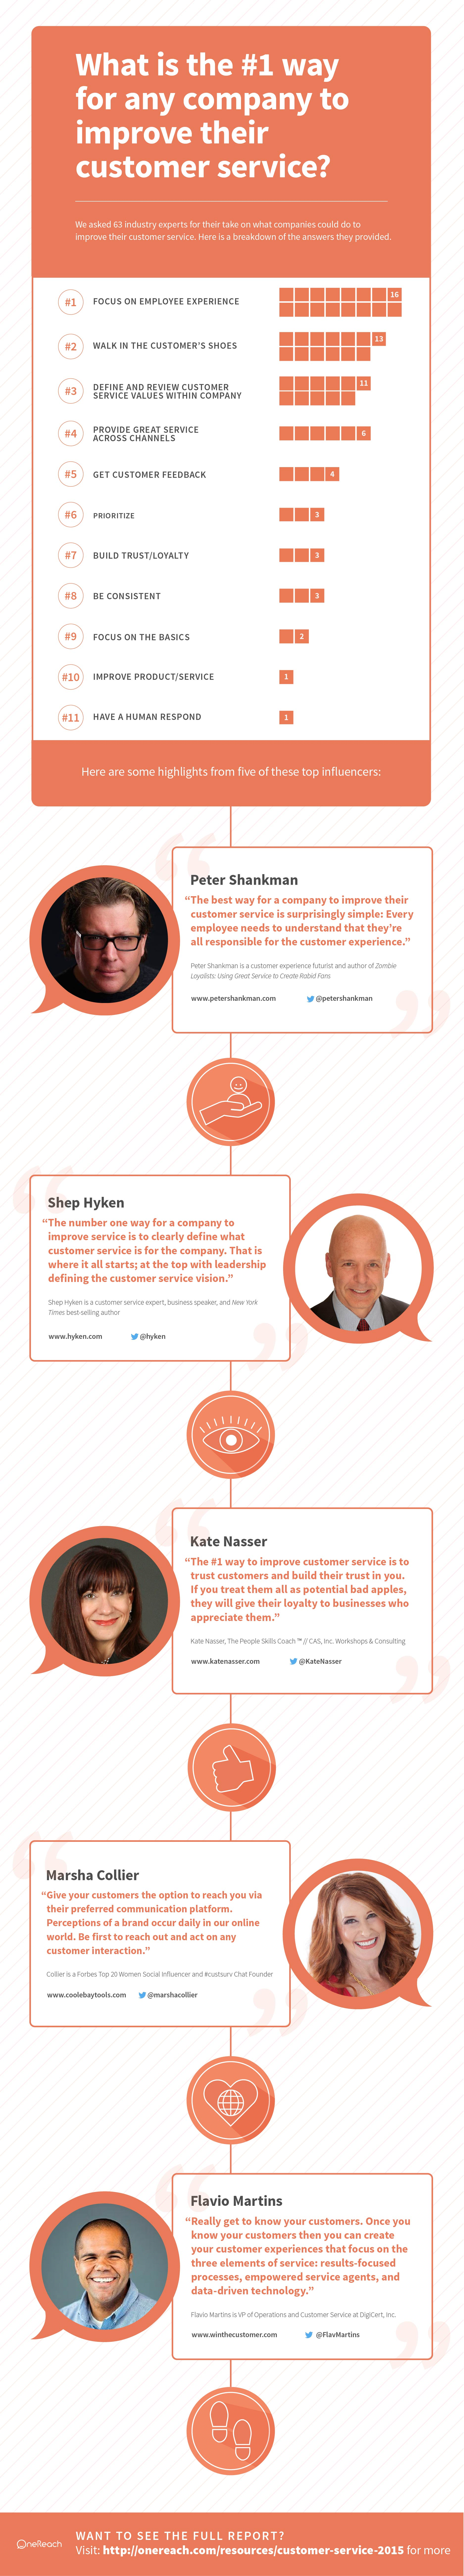 influencers_infographic